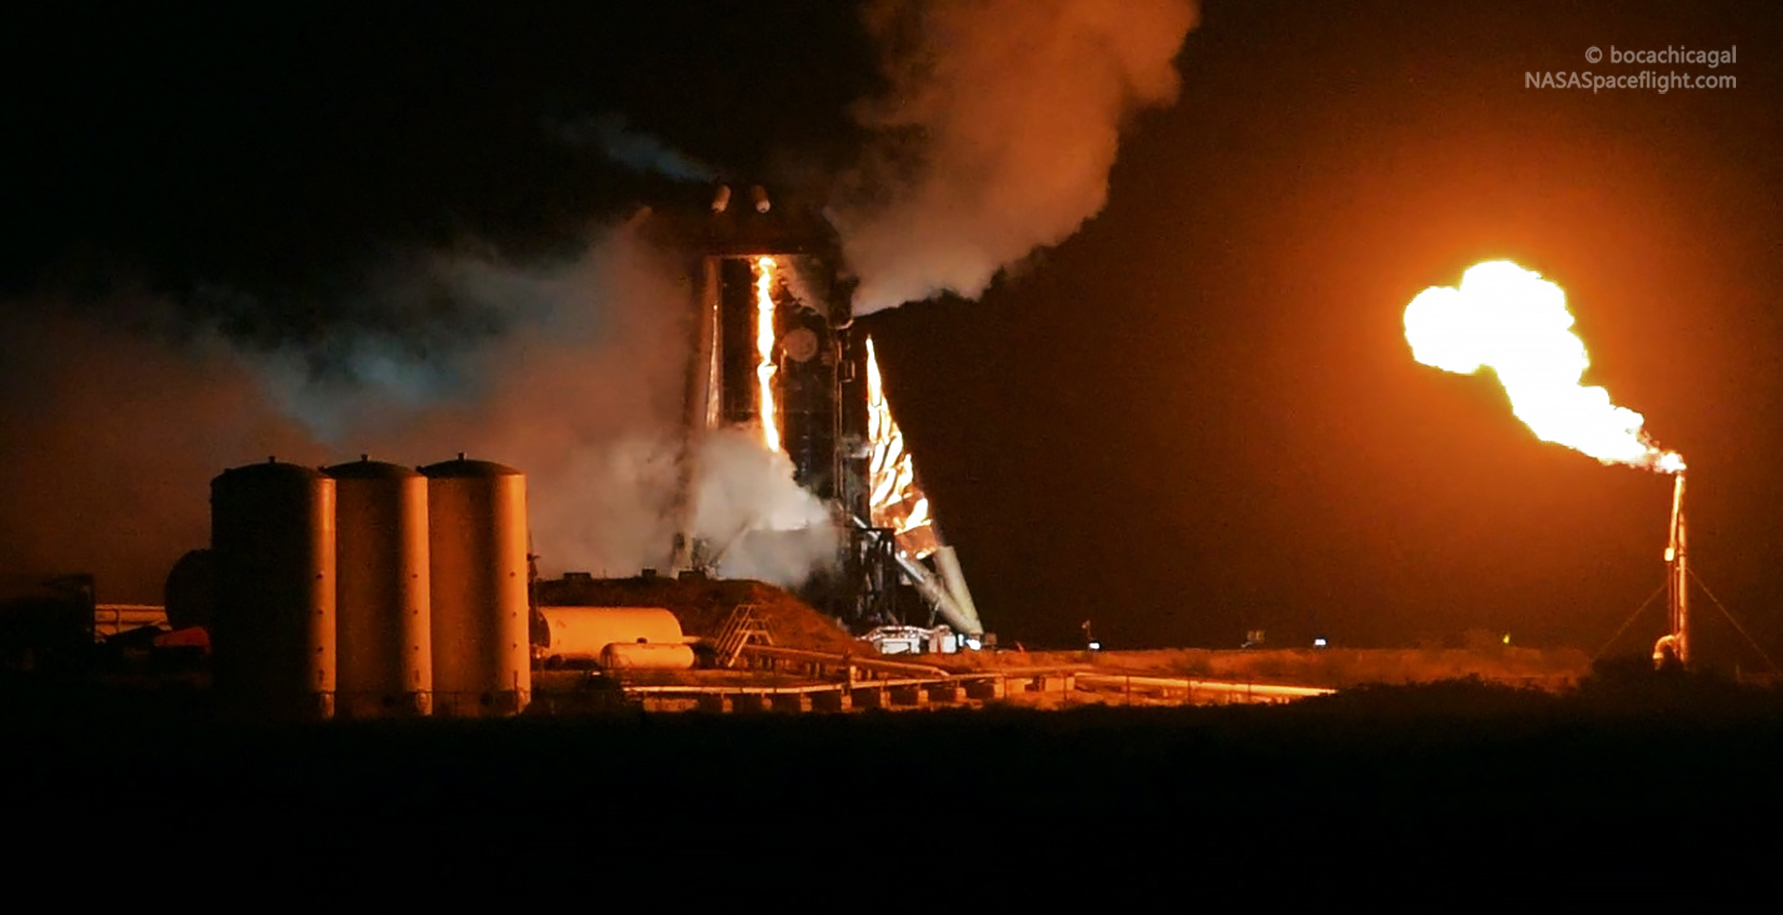 Starhopper Raptor SN06 preburner static fire 071519 (NASASpaceflight – bocachicagal) 2 crop